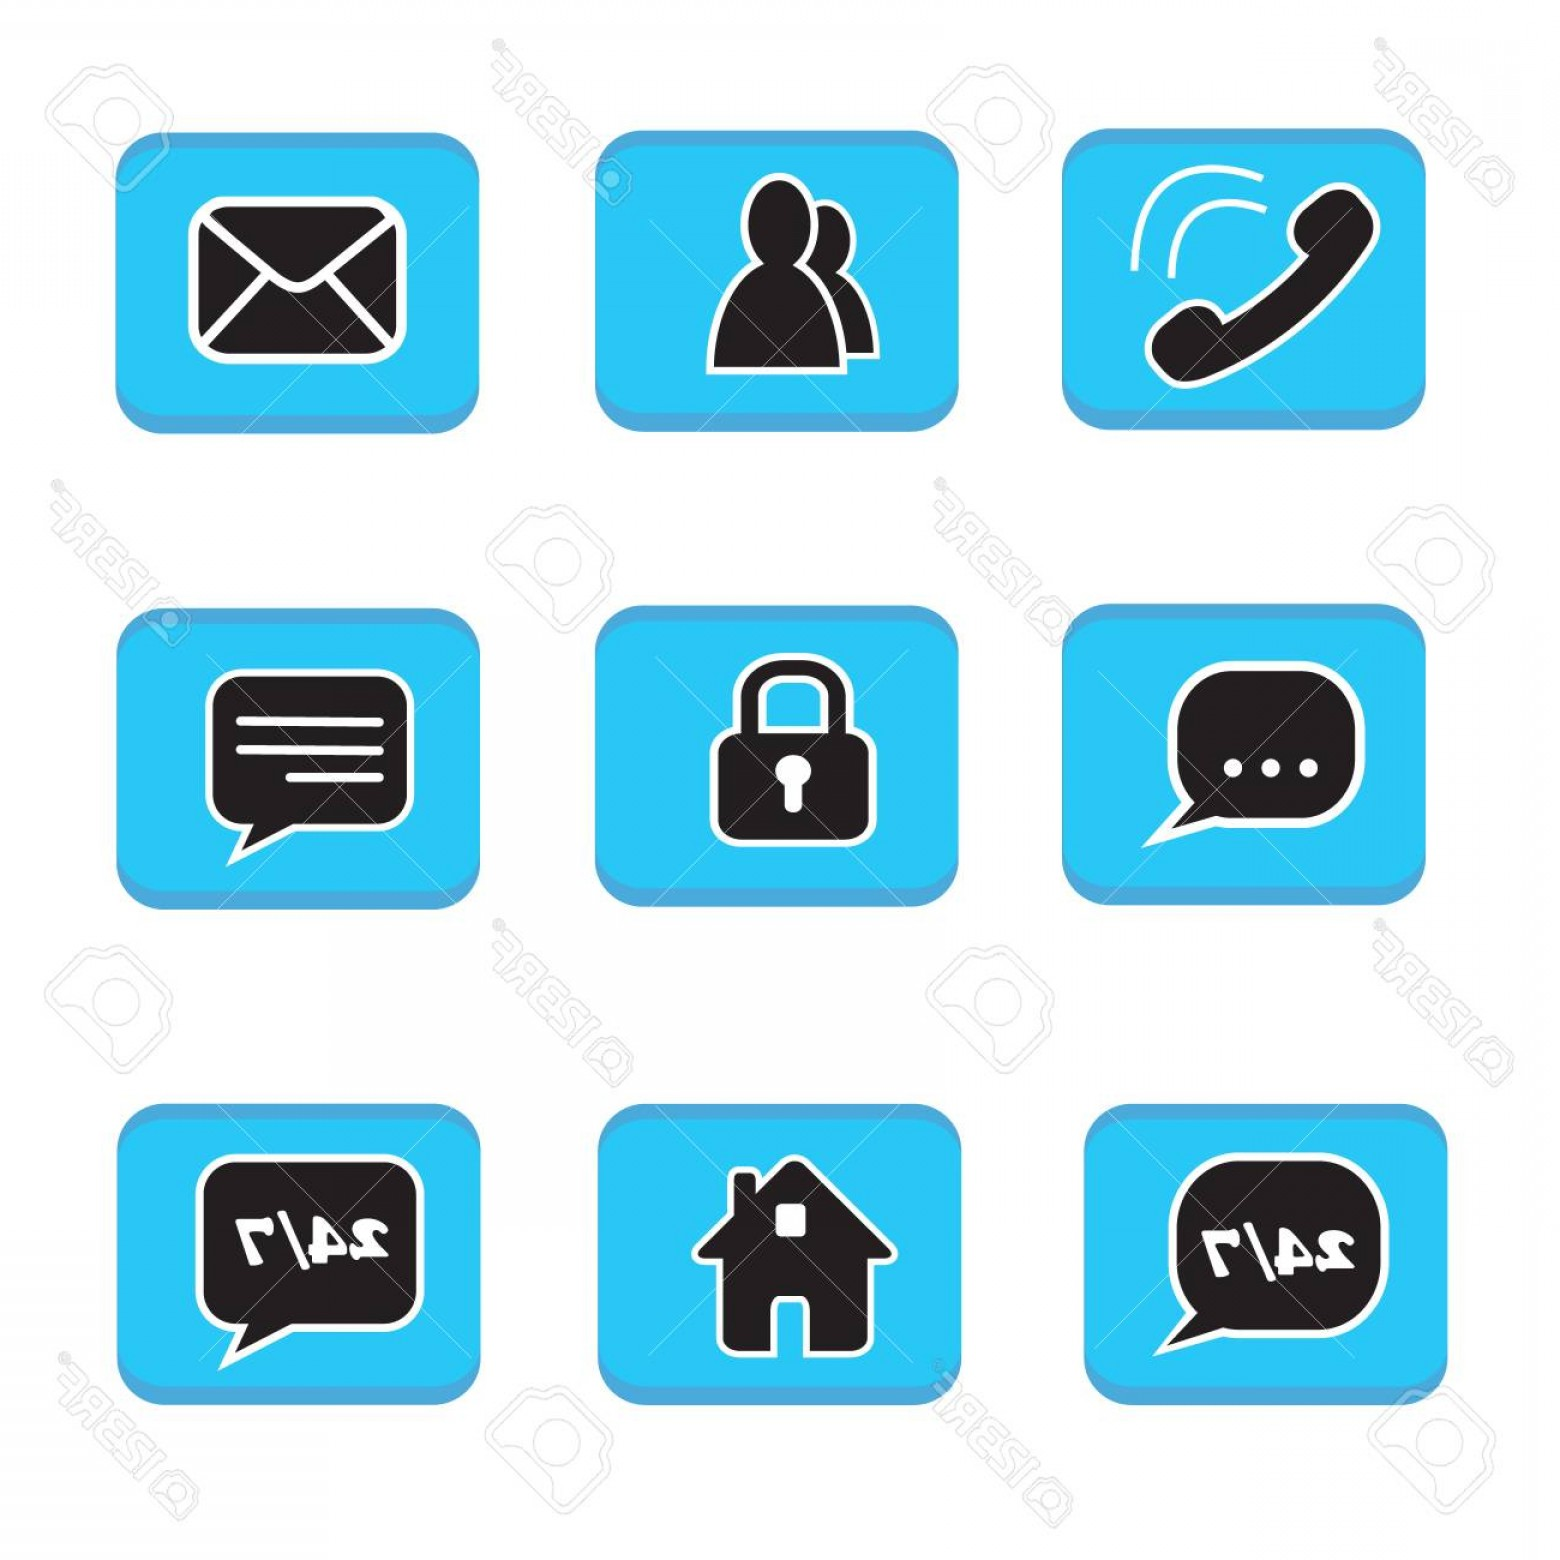 Contact Button Icons Vector Free: Photostock Vector Set Of Web Button Icons Contact Symbol Collection Black And White On Blue Button Phone Mail Life Cha